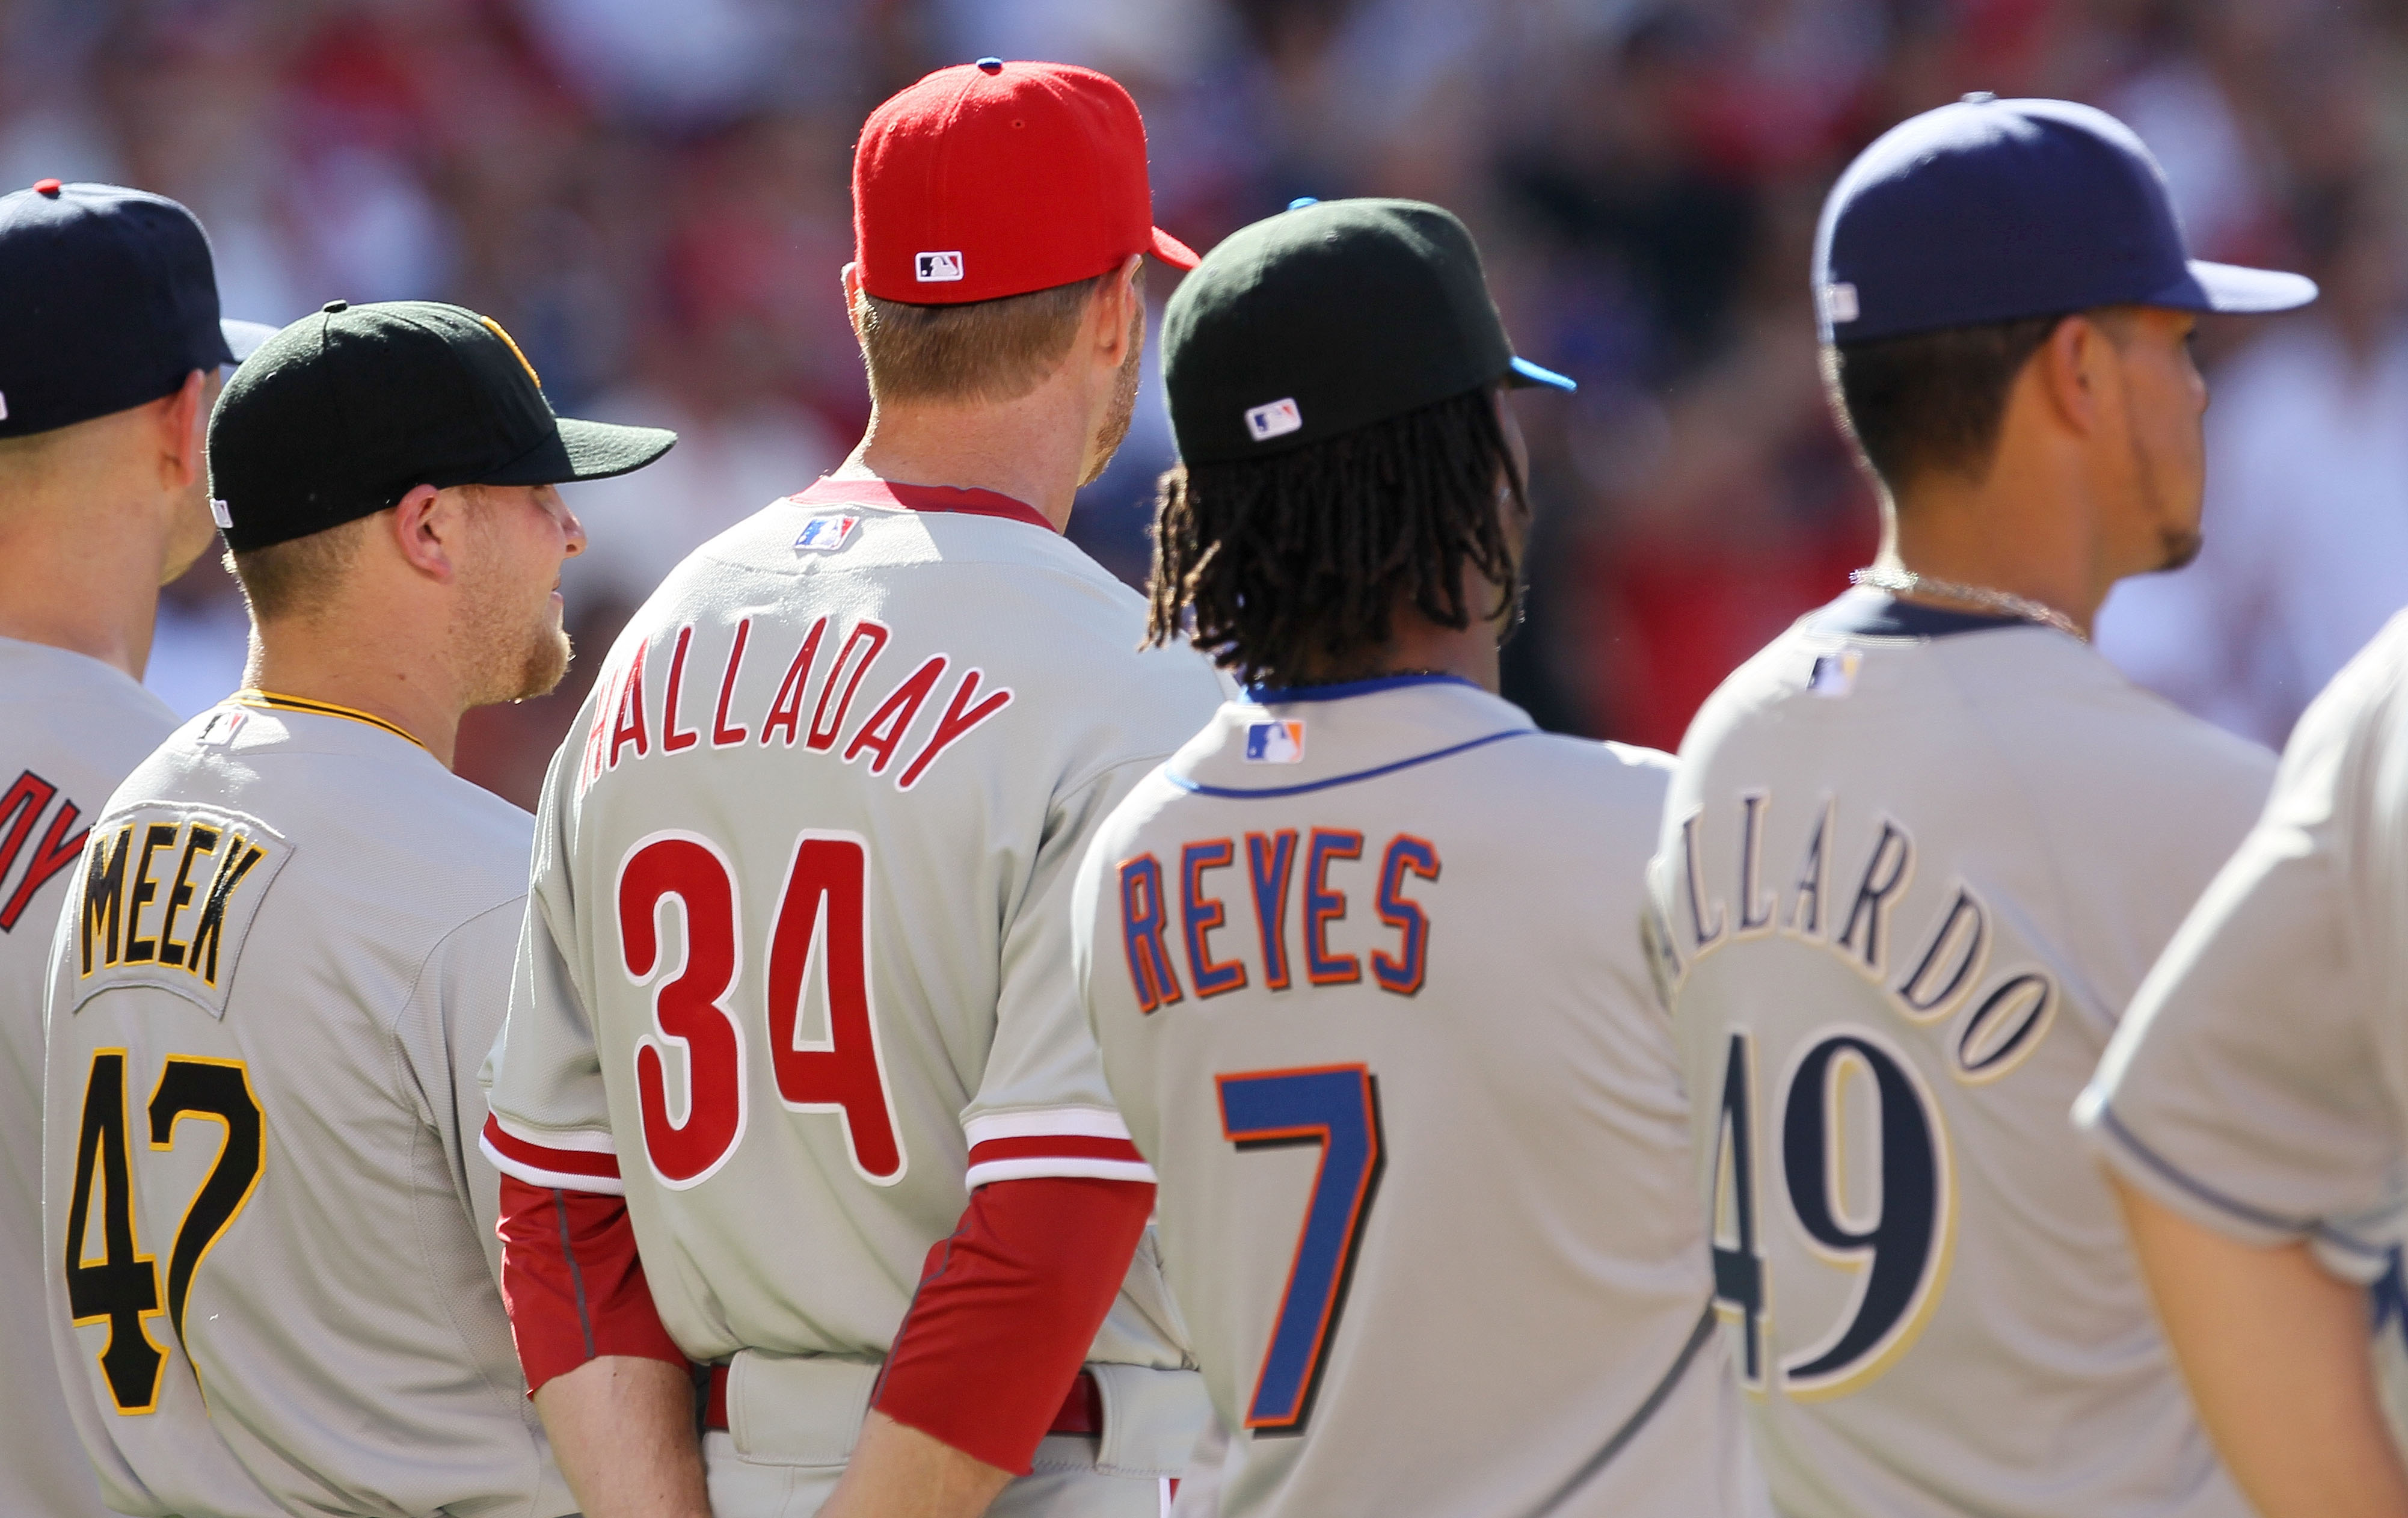 ANAHEIM, CA - JULY 13:  (L) National League All-Star pitcher Evan Meek stands with his teammates prior to the 81st MLB All-Star Game at Angel Stadium of Anaheim on July 13, 2010 in Anaheim, California.  (Photo by Stephen Dunn/Getty Images)